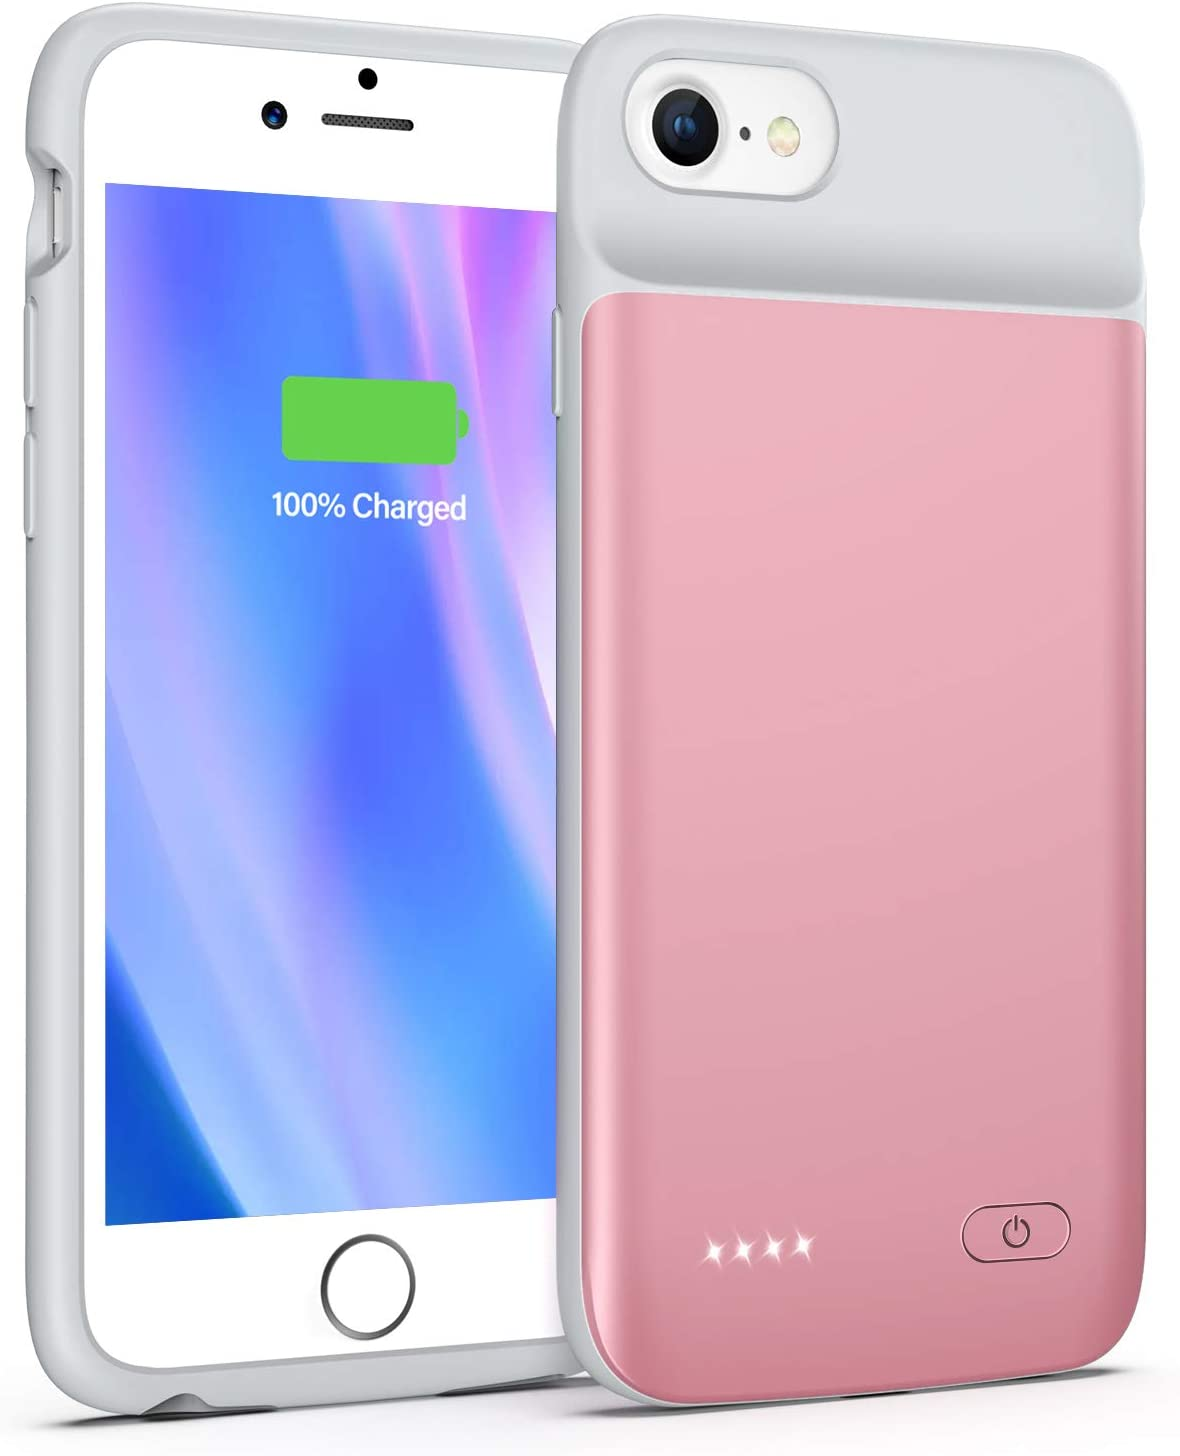 Lonlif Battery Case for iPhone 7/8/SE 2020(2nd Generation), 3200mAh Portable Charging Case Protective Slim Extended Battery Pack Charger Case (Rose Gold)